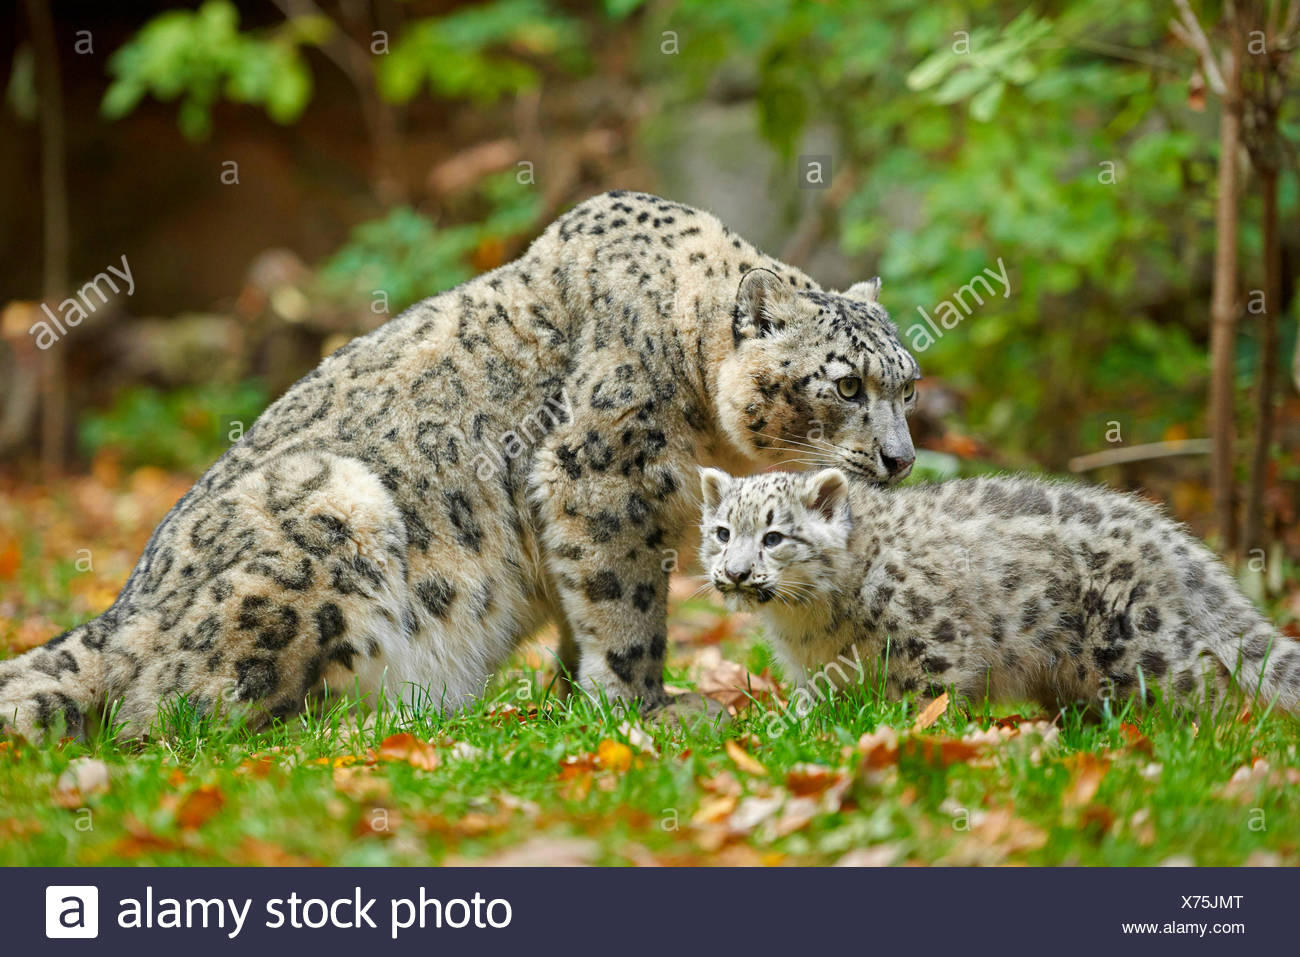 snow leopard (Uncia uncia, Panthera uncia), leopardesses with one youngster in a meadow Stock Photo